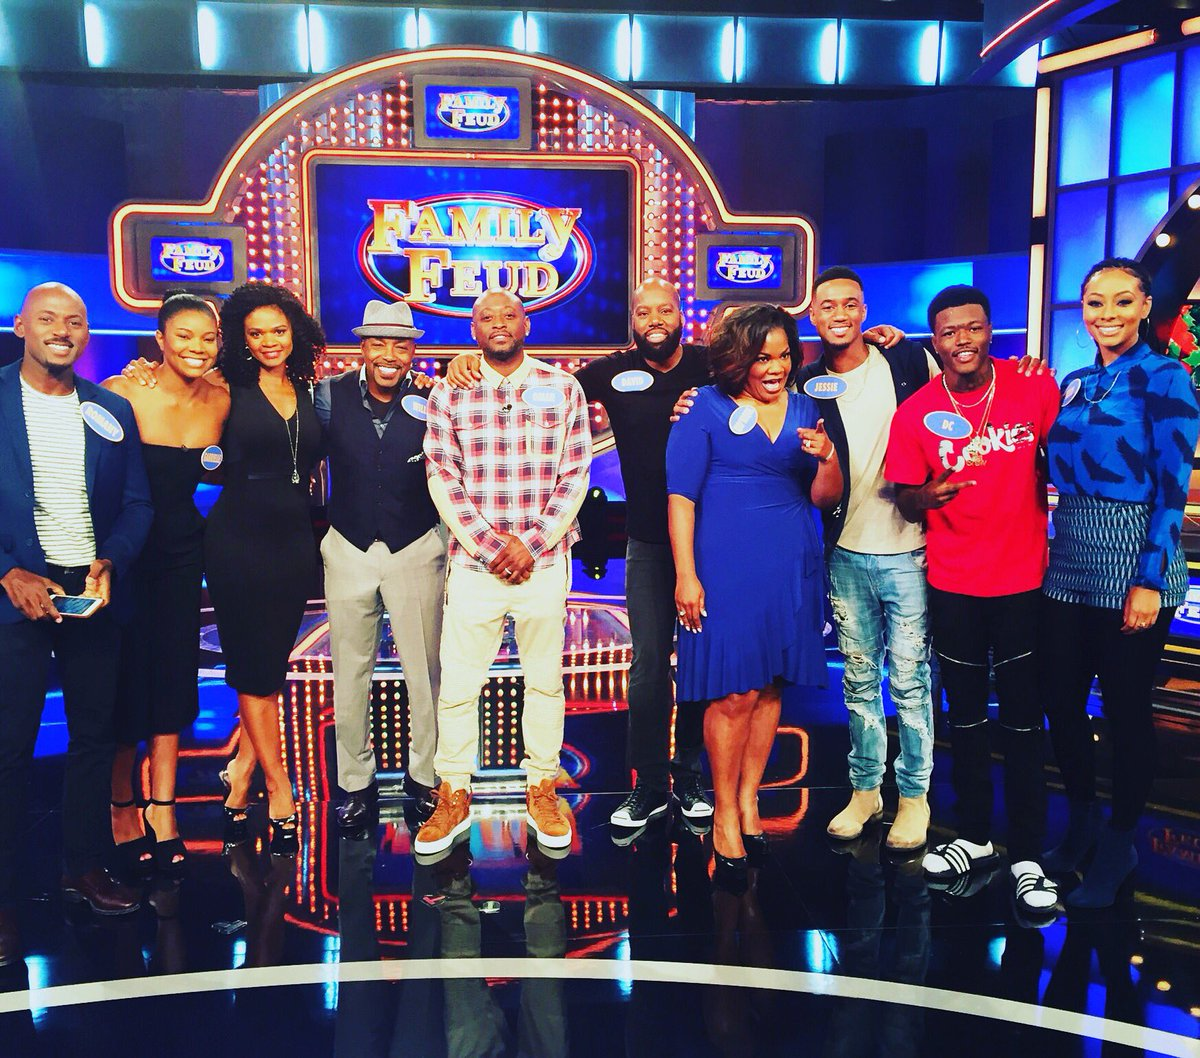 Almost Christmas Cast.Will Packer On Twitter Shot Familyfeud Today With